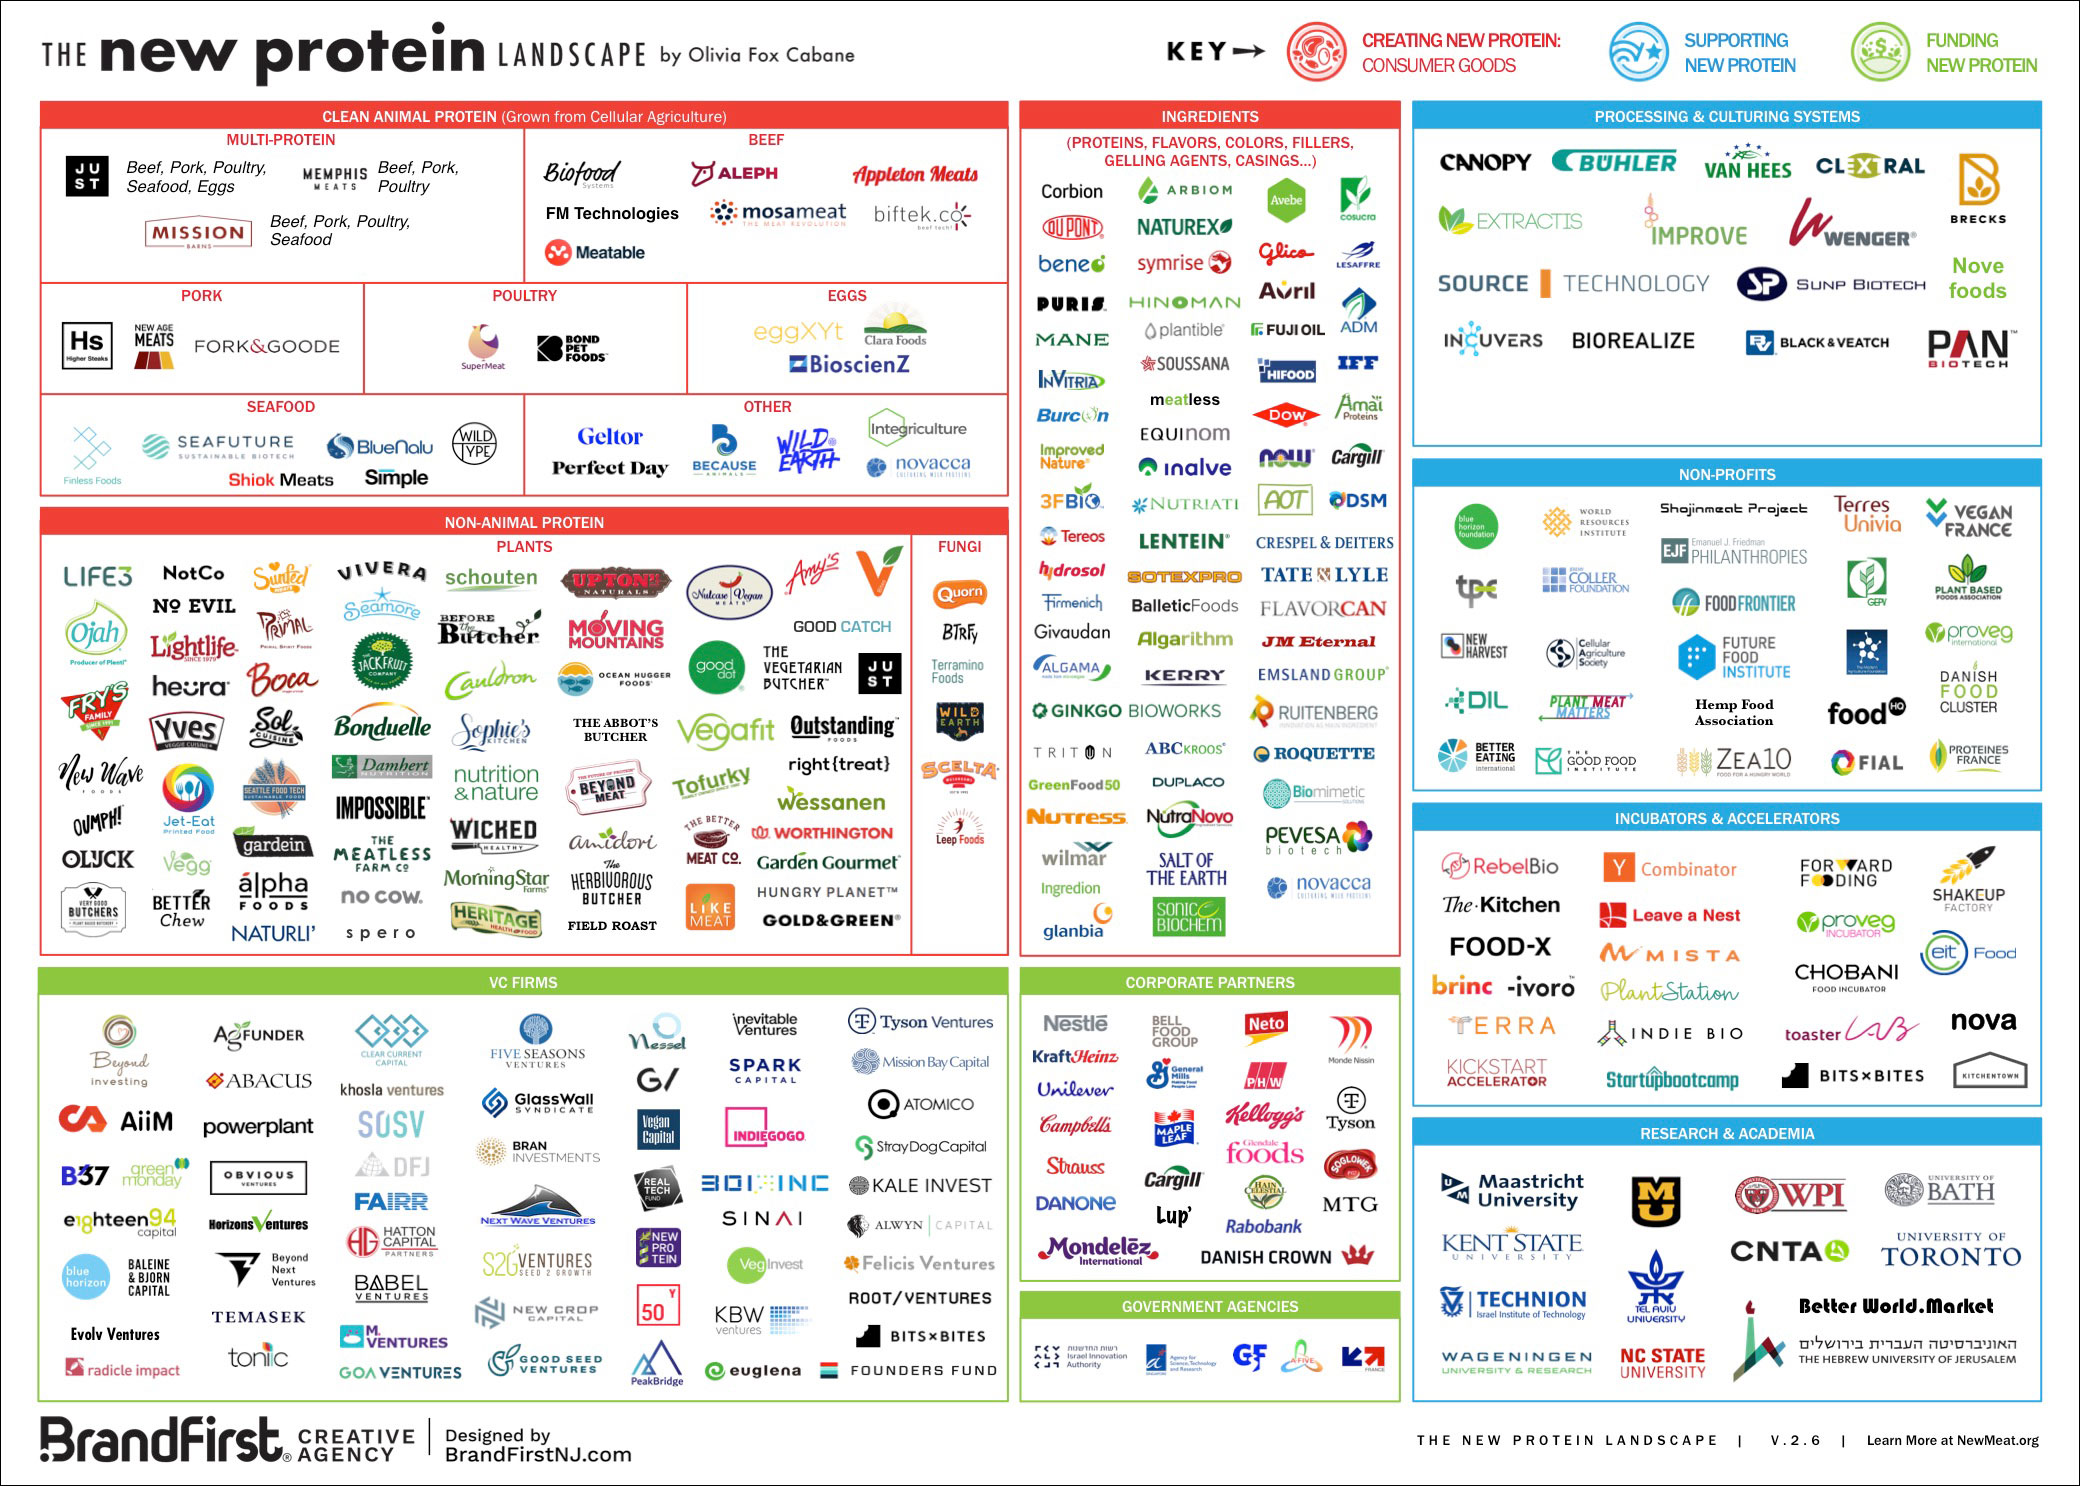 The New Protein Landscape, PRINT -